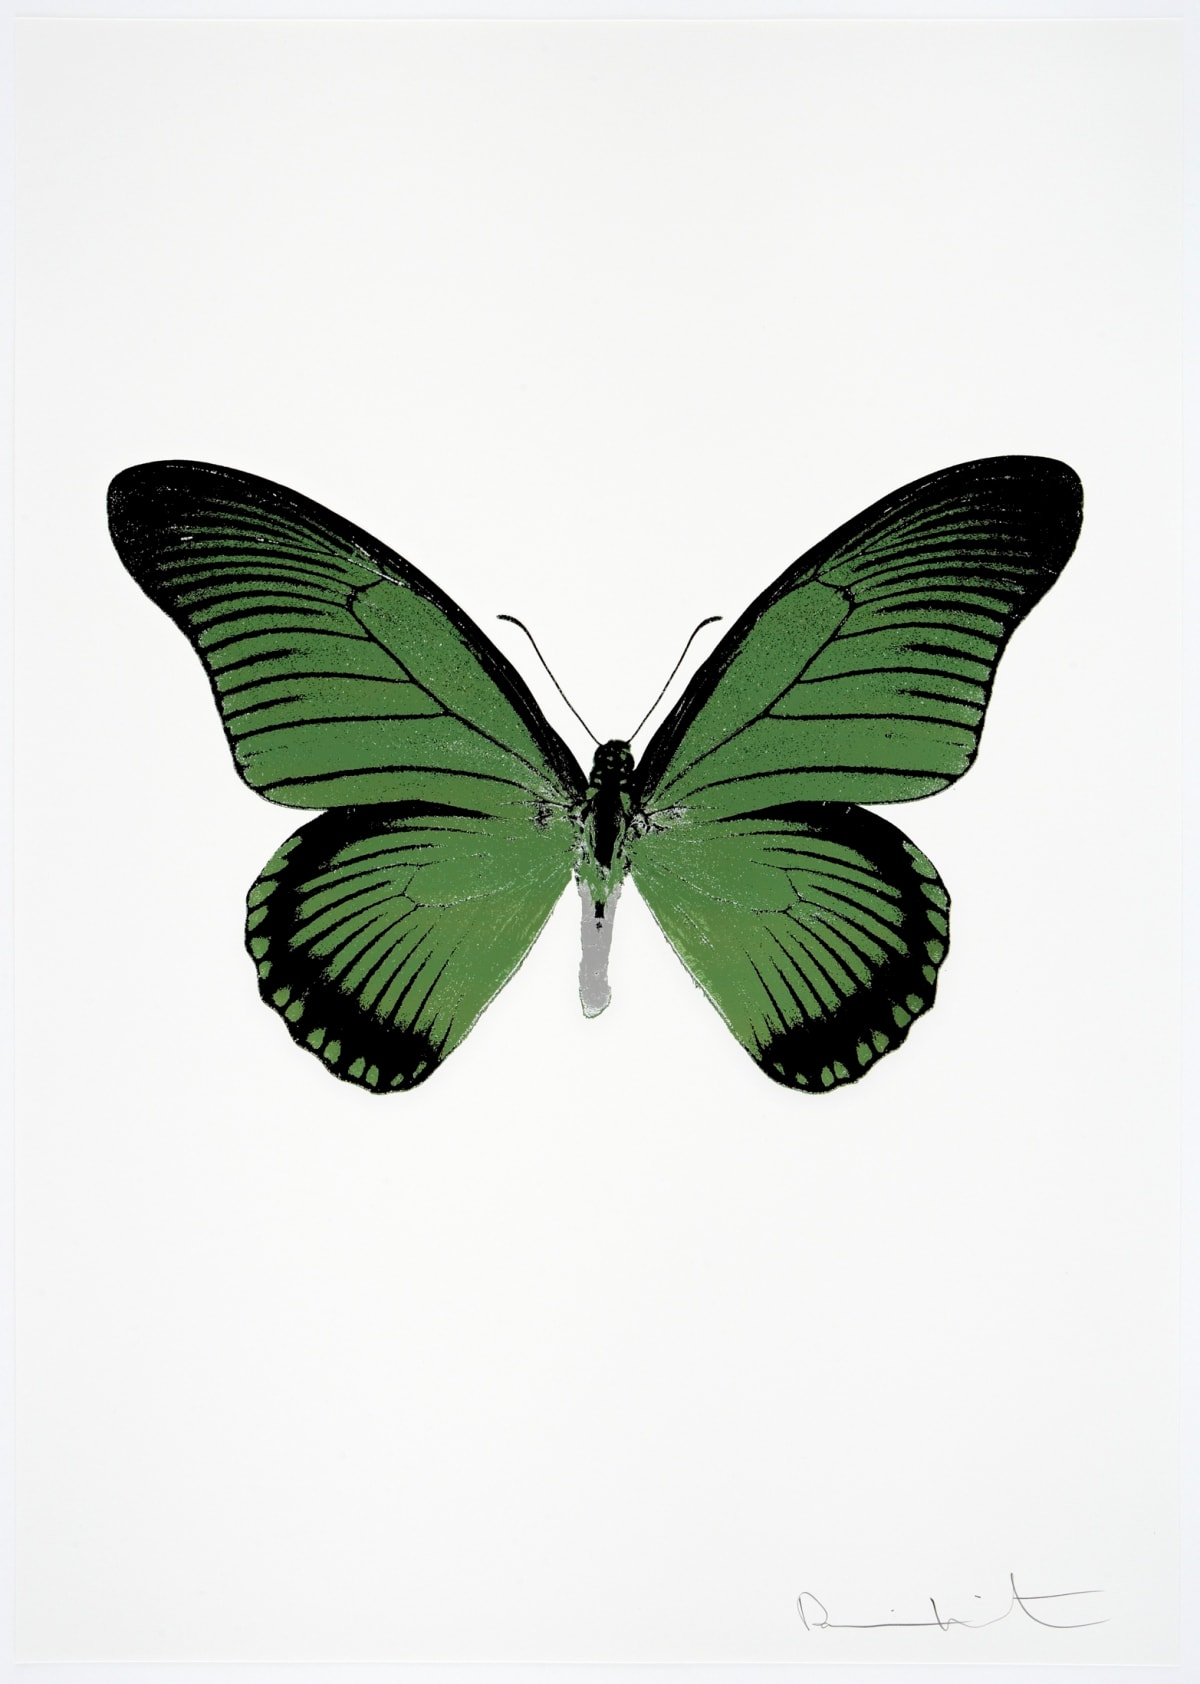 Damien Hirst The Souls IV - Leaf Green/Raven Black/Silver Gloss Damien Hirst butterfly foil print for sale Damien Hirst print for sale , 2010 3 colour foil block on 300gsm Arches 88 archival paper. Signed and numbered. Published by Paul Stolper and Other Criteria 72 x 51cm OC7980 / 1418-3 Edition of 15